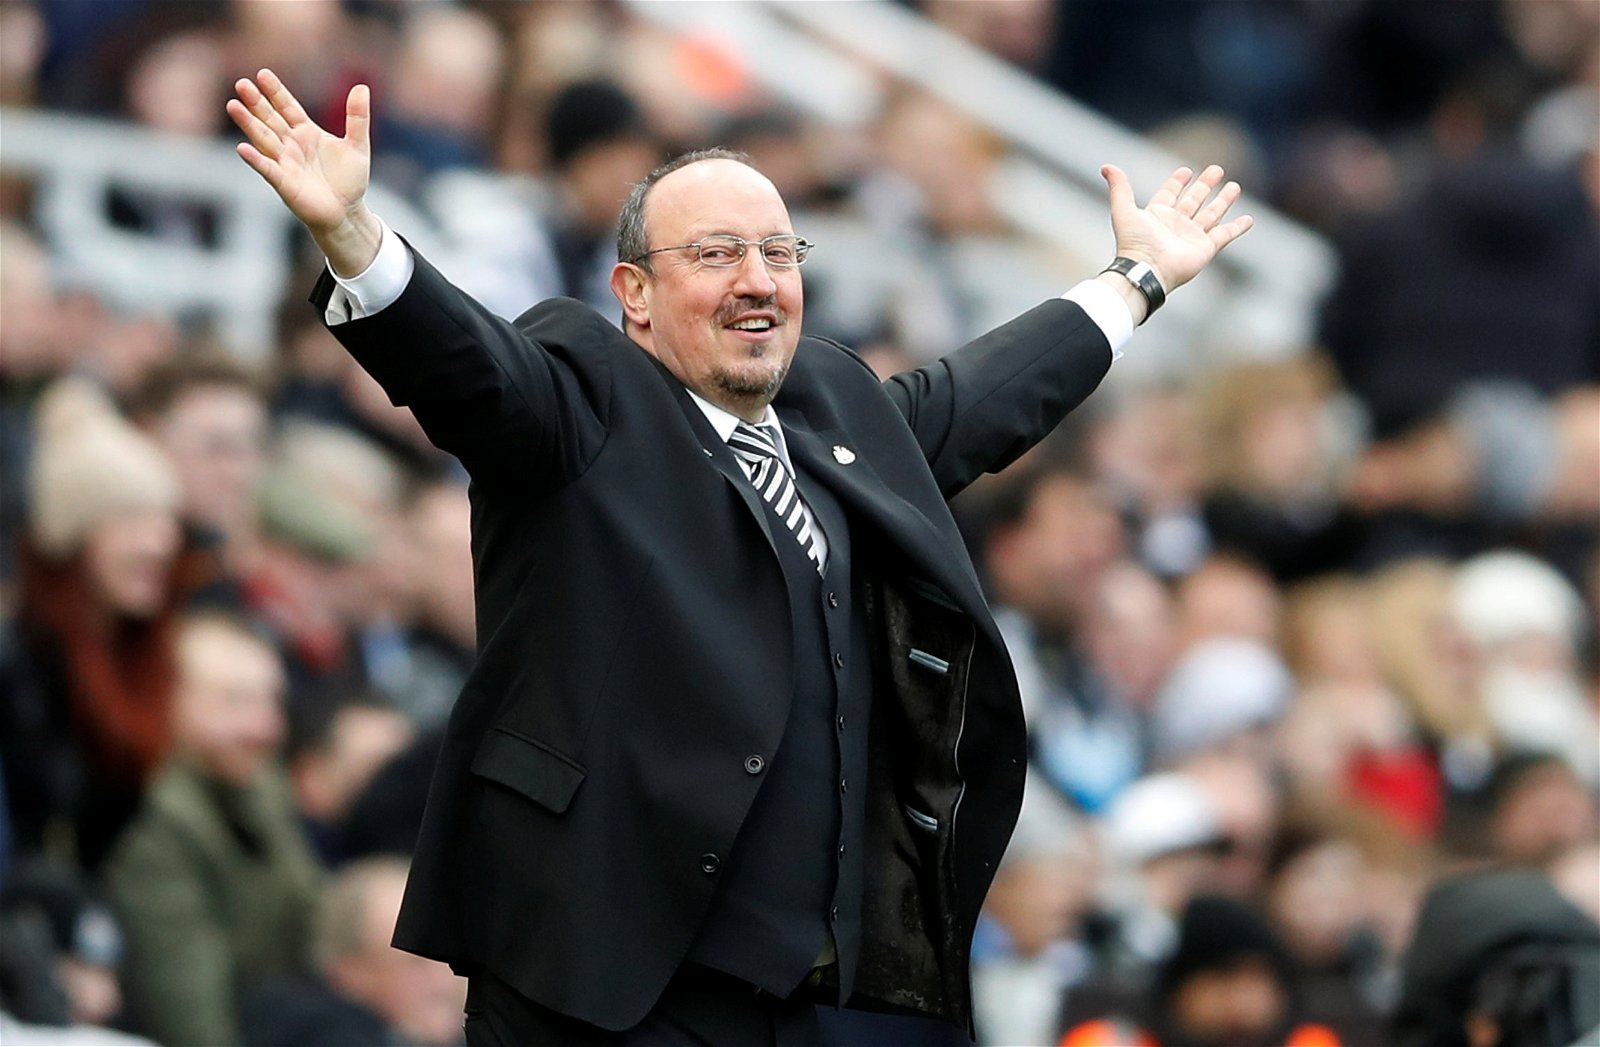 Rafa Benitez issues Mike Ashley with an ultimatum ahead of crucial Premier League run-in